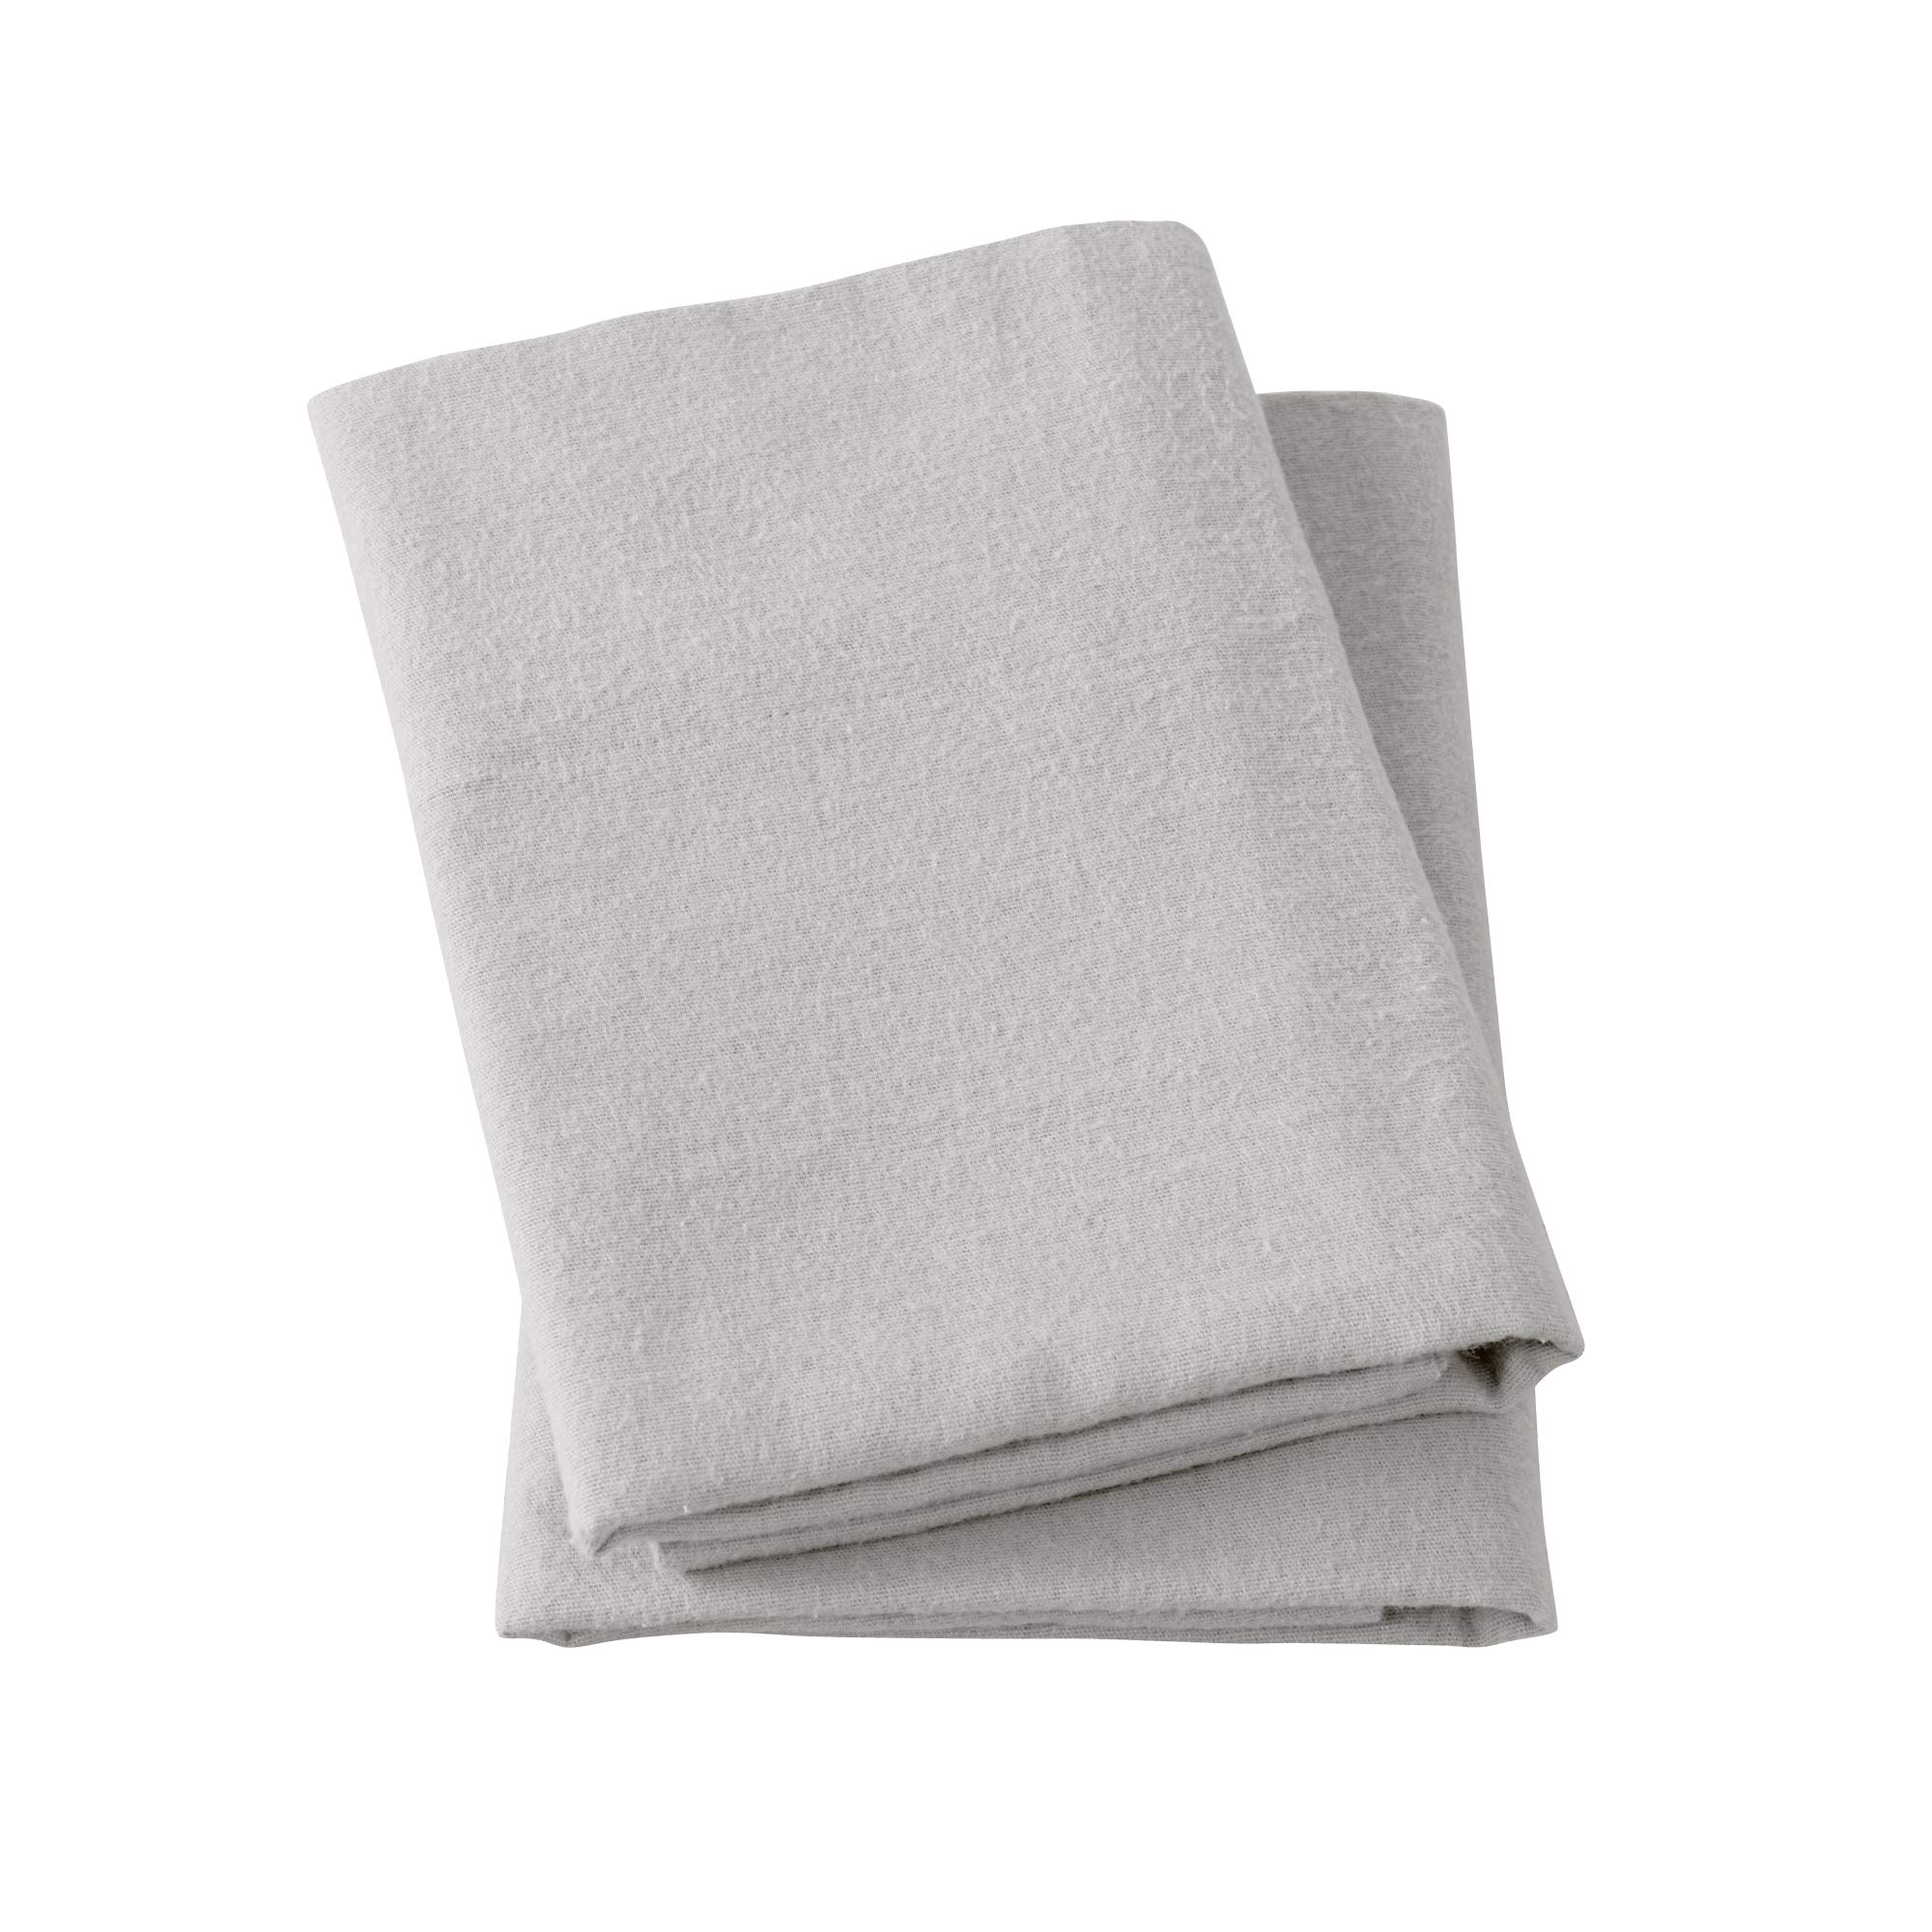 Extra Soft 100% Turkish Cotton Flannel Pillowcase Set. Warm, Cozy, Lightweight, Luxury Winter Bed Pillowcases in Solid Colors. Nordic Collection (Standard, Light Grey)